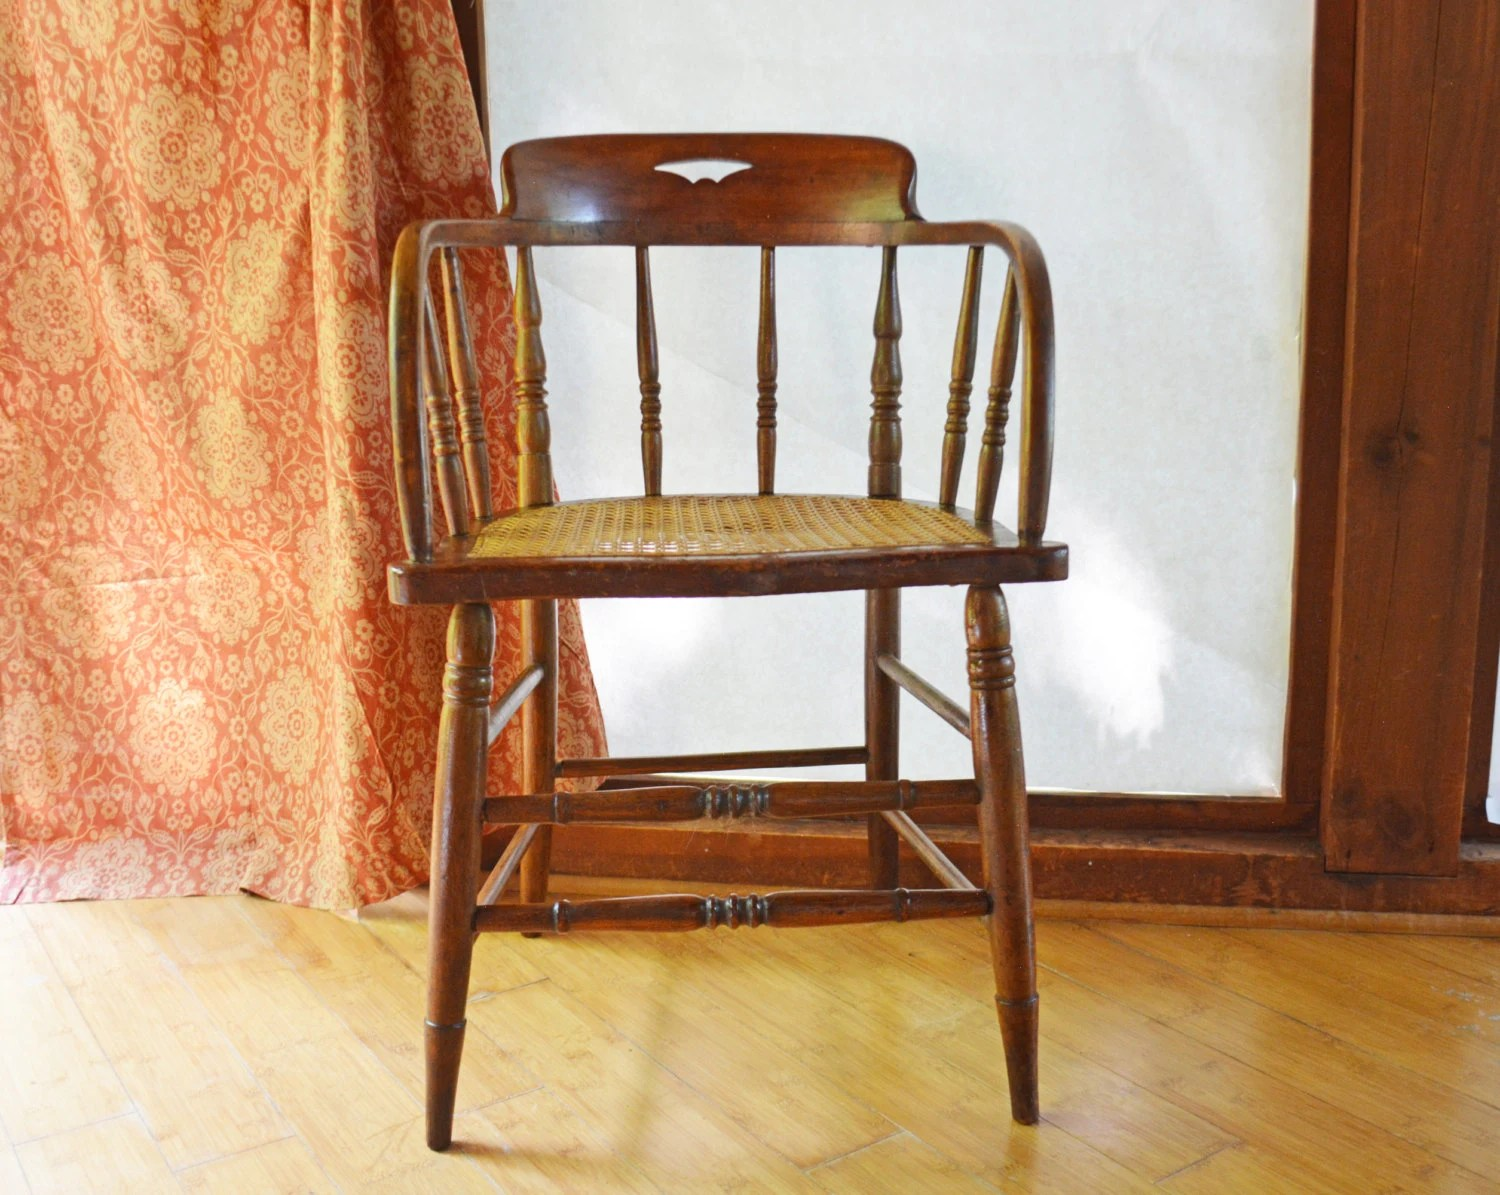 antique wooden chairs pictures old for sale wood chair barrel back small captains